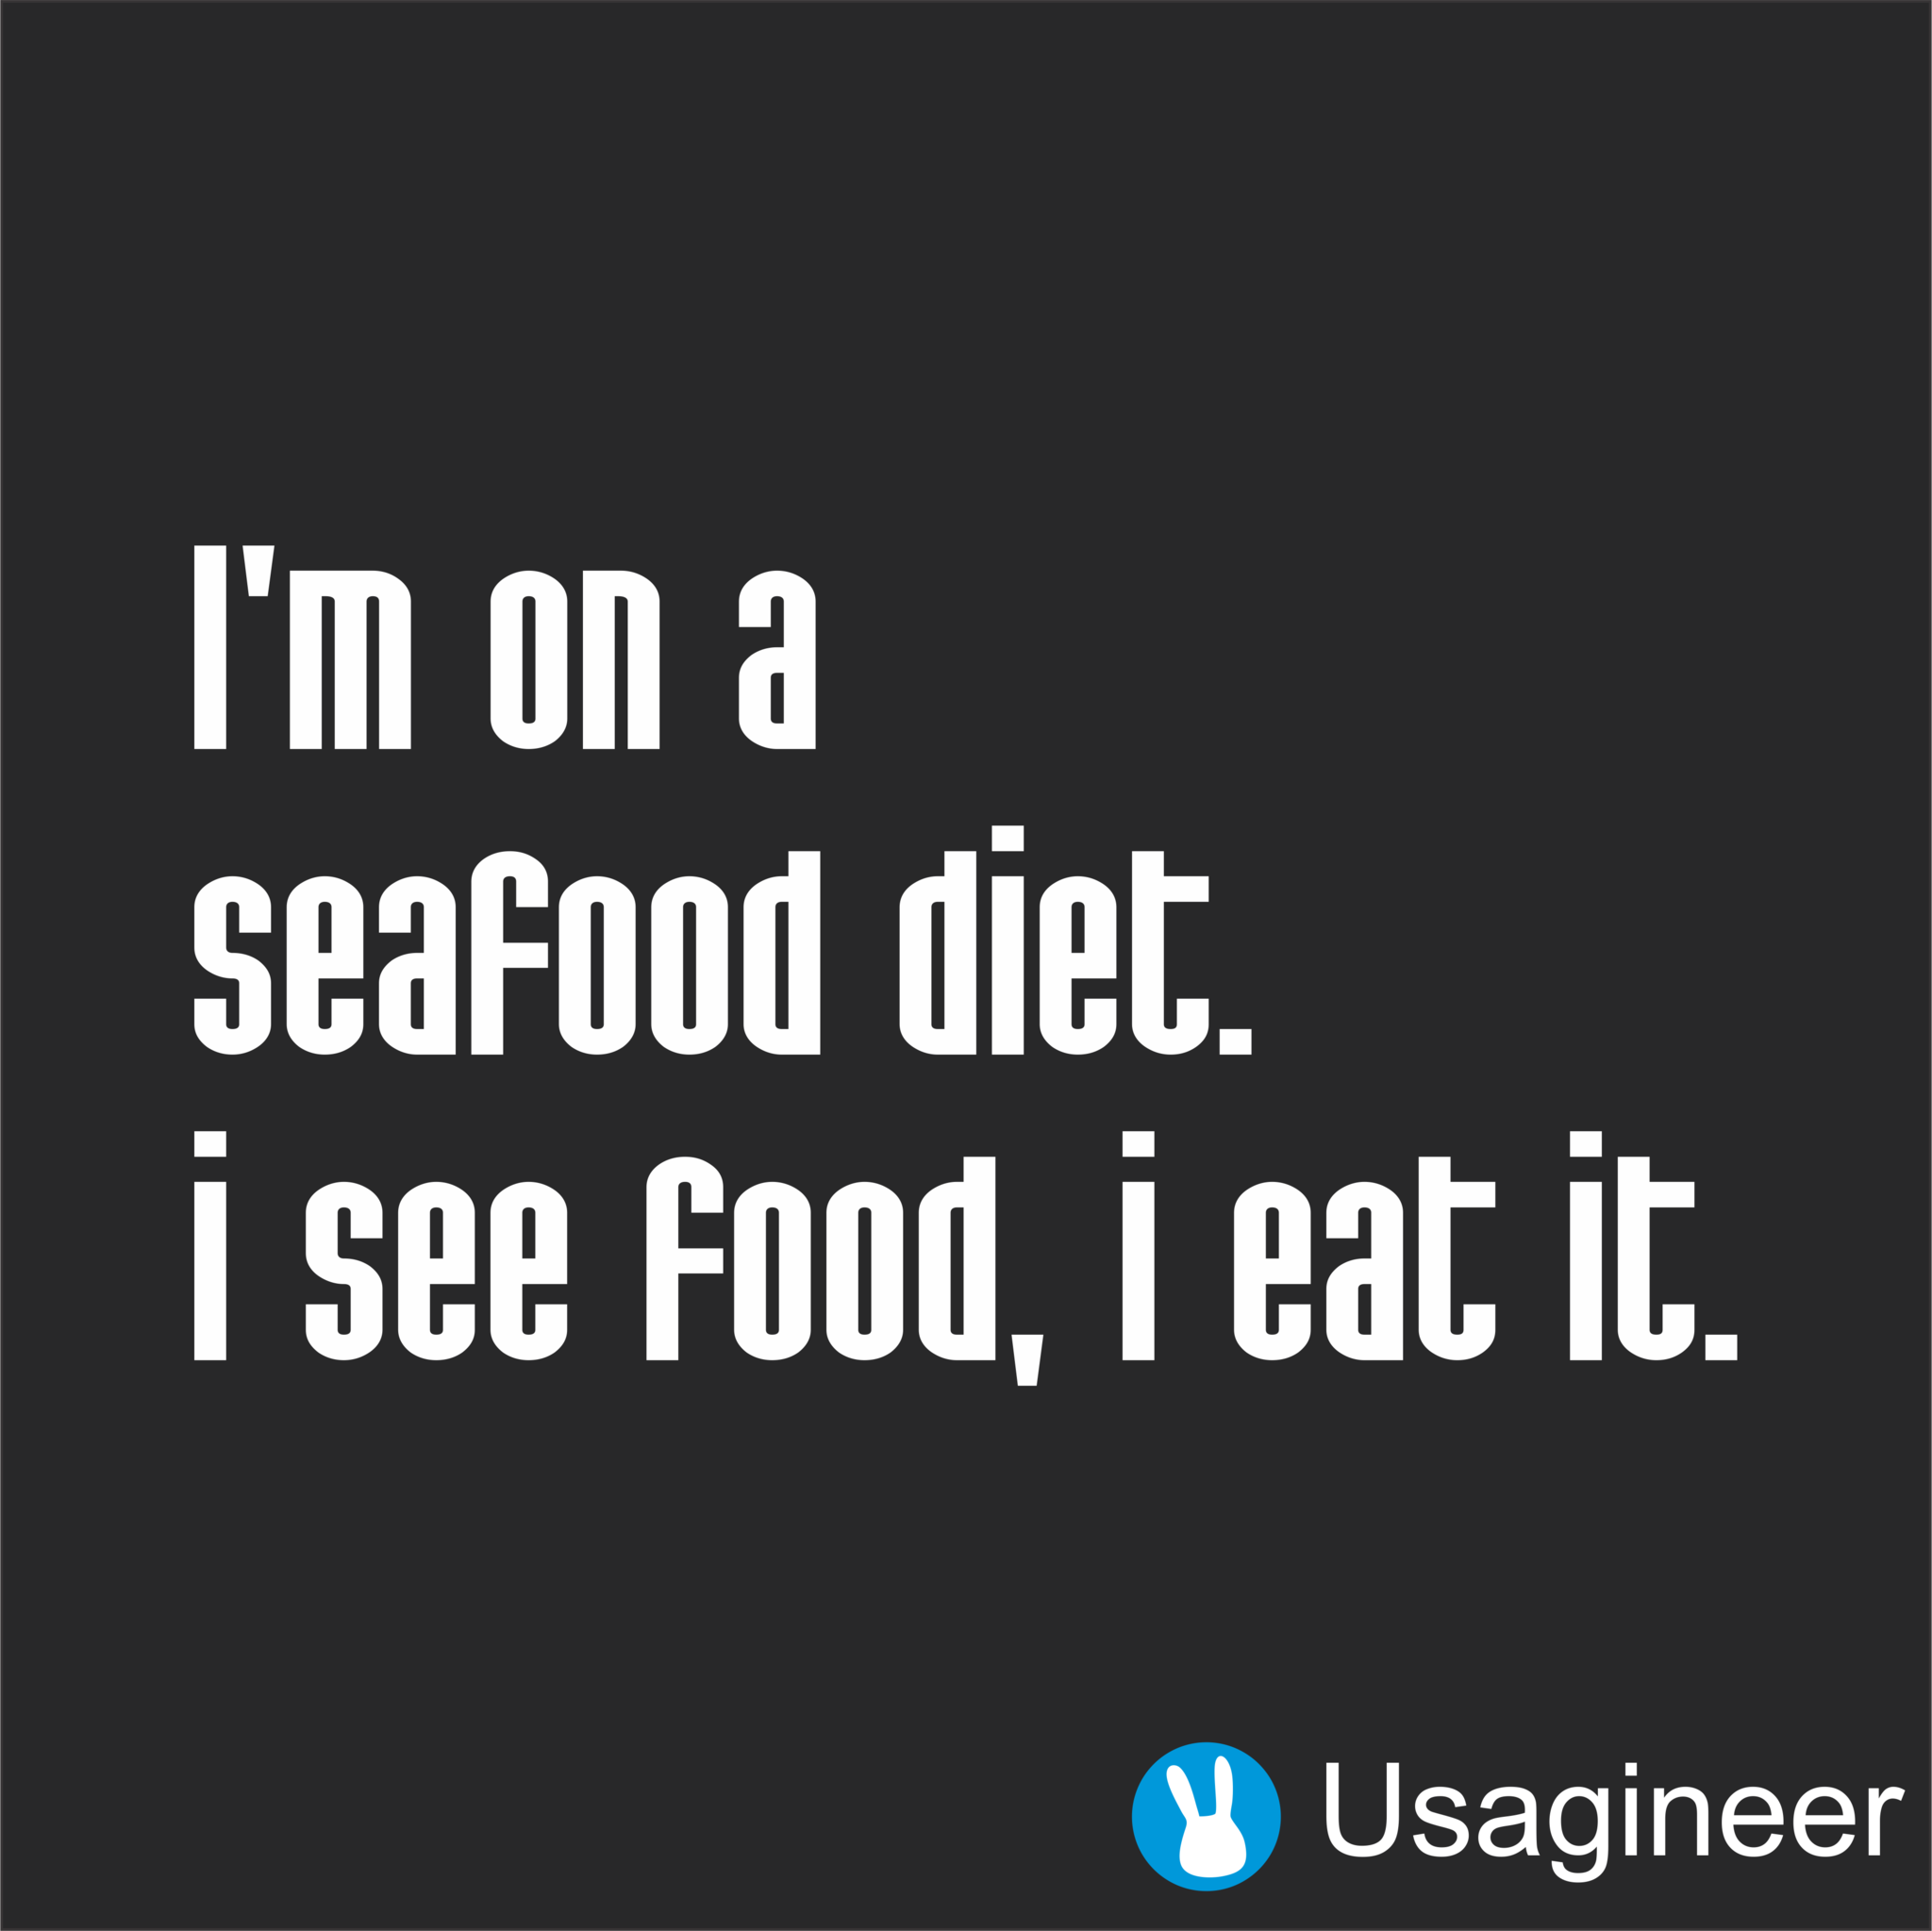 Funny Quotes About Food: I'M ON A SEAFOOD DIET. I SEE FOOD AND I EAT IT QUOTE VINYL